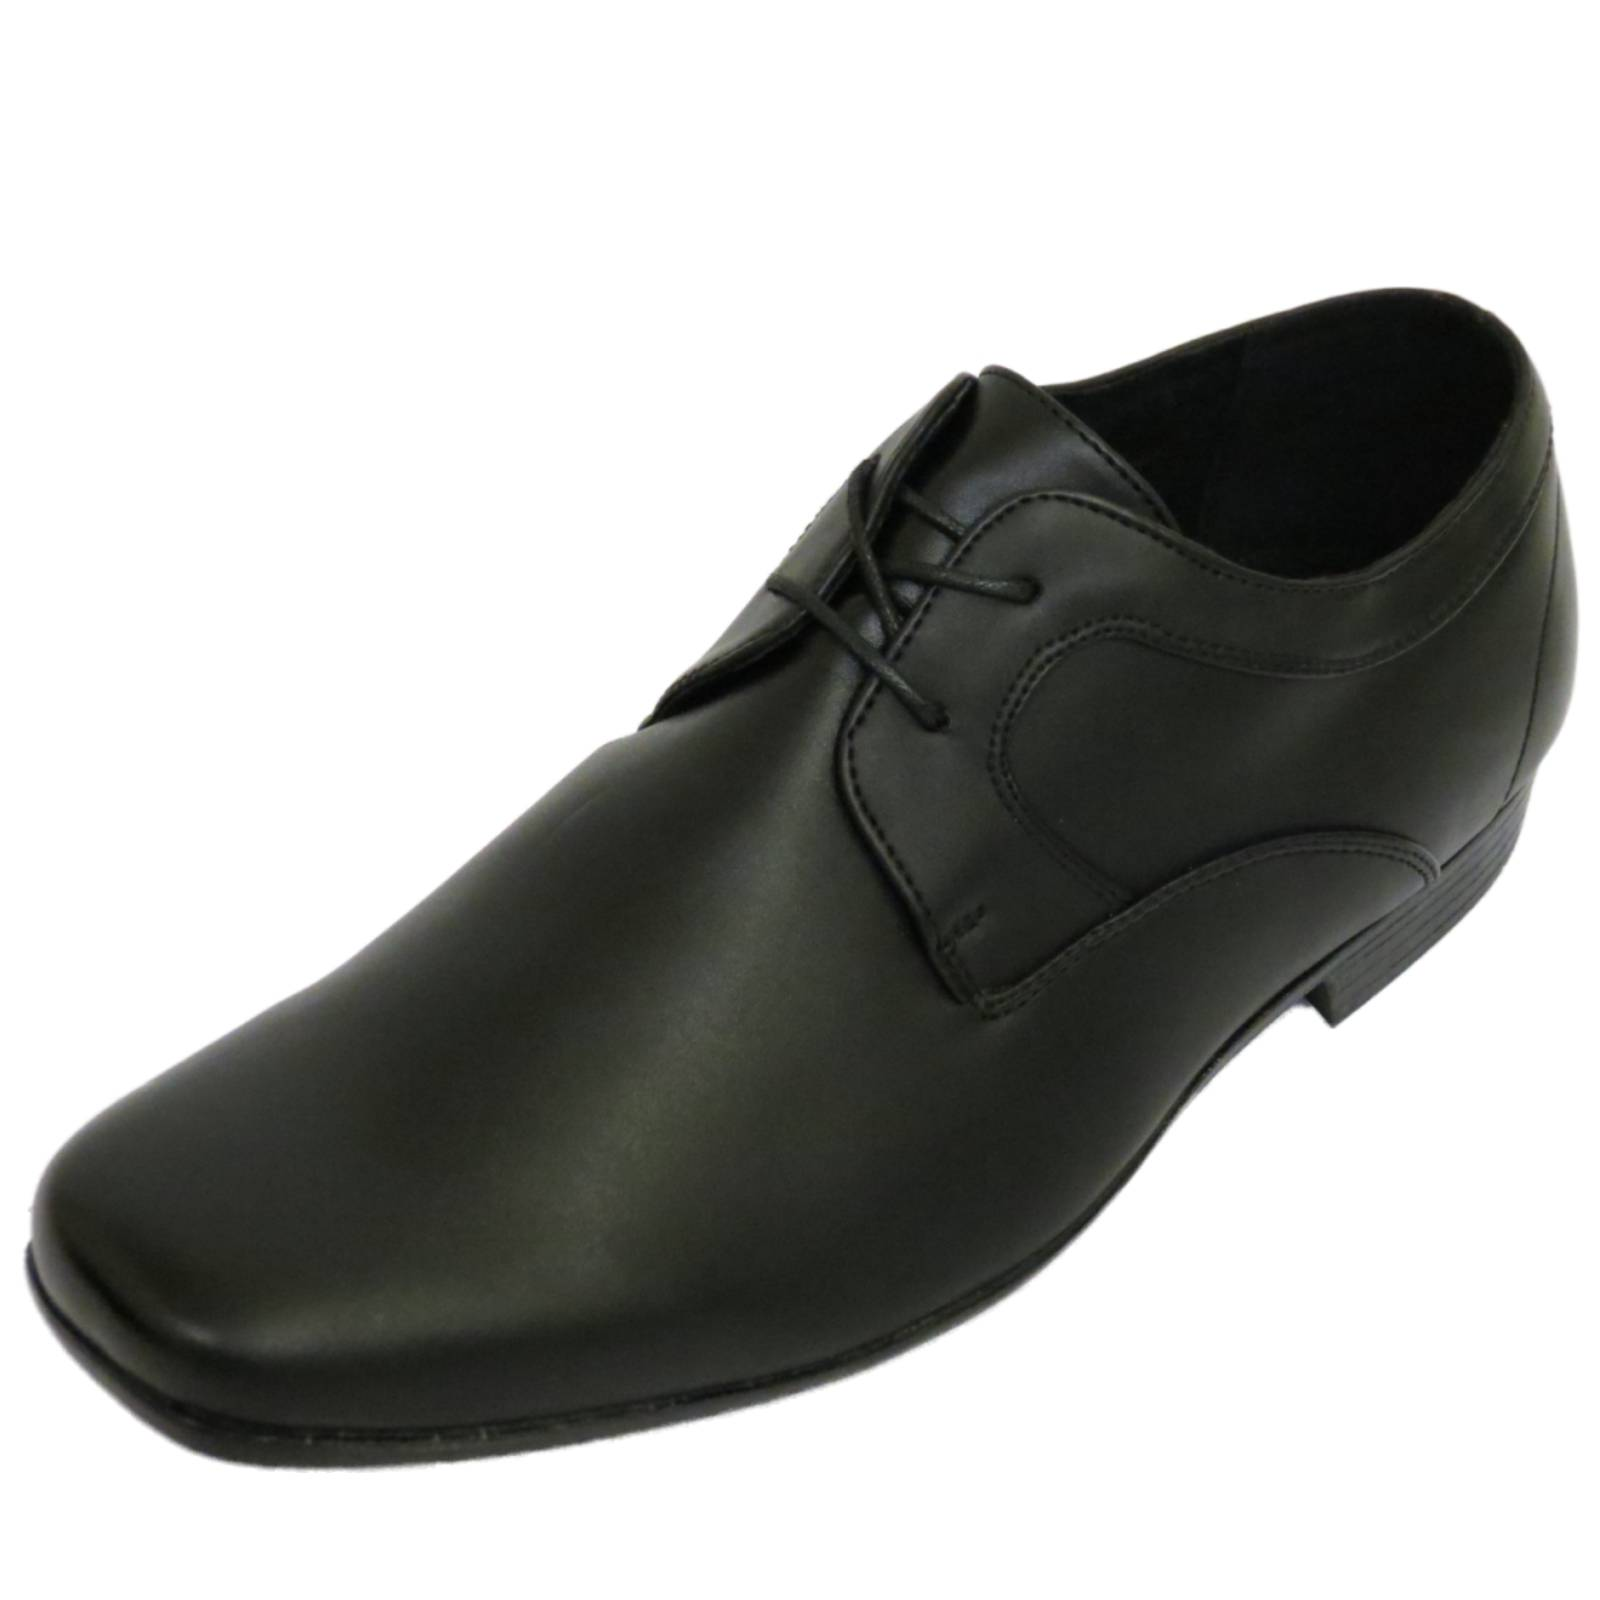 mens black lace up work wedding smart casual loafers work